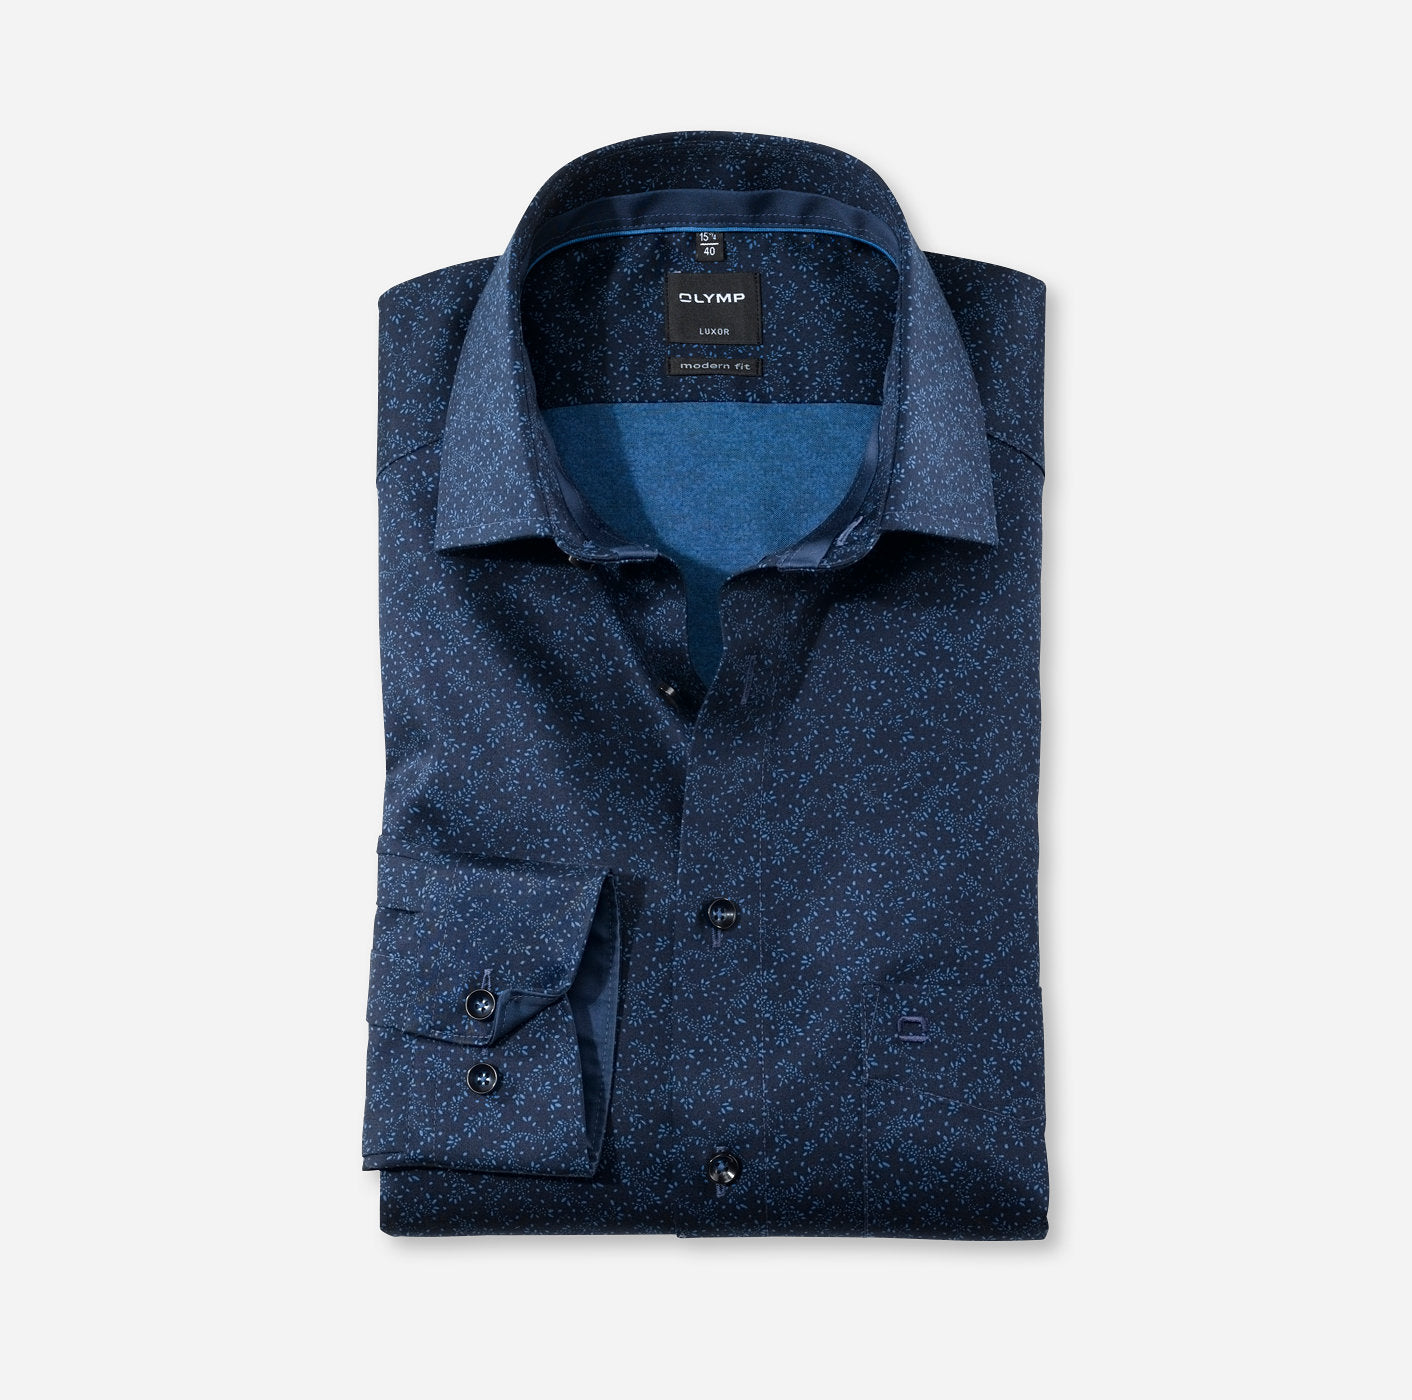 Chemise Olymp Luxor coupe droite sans repassage marine